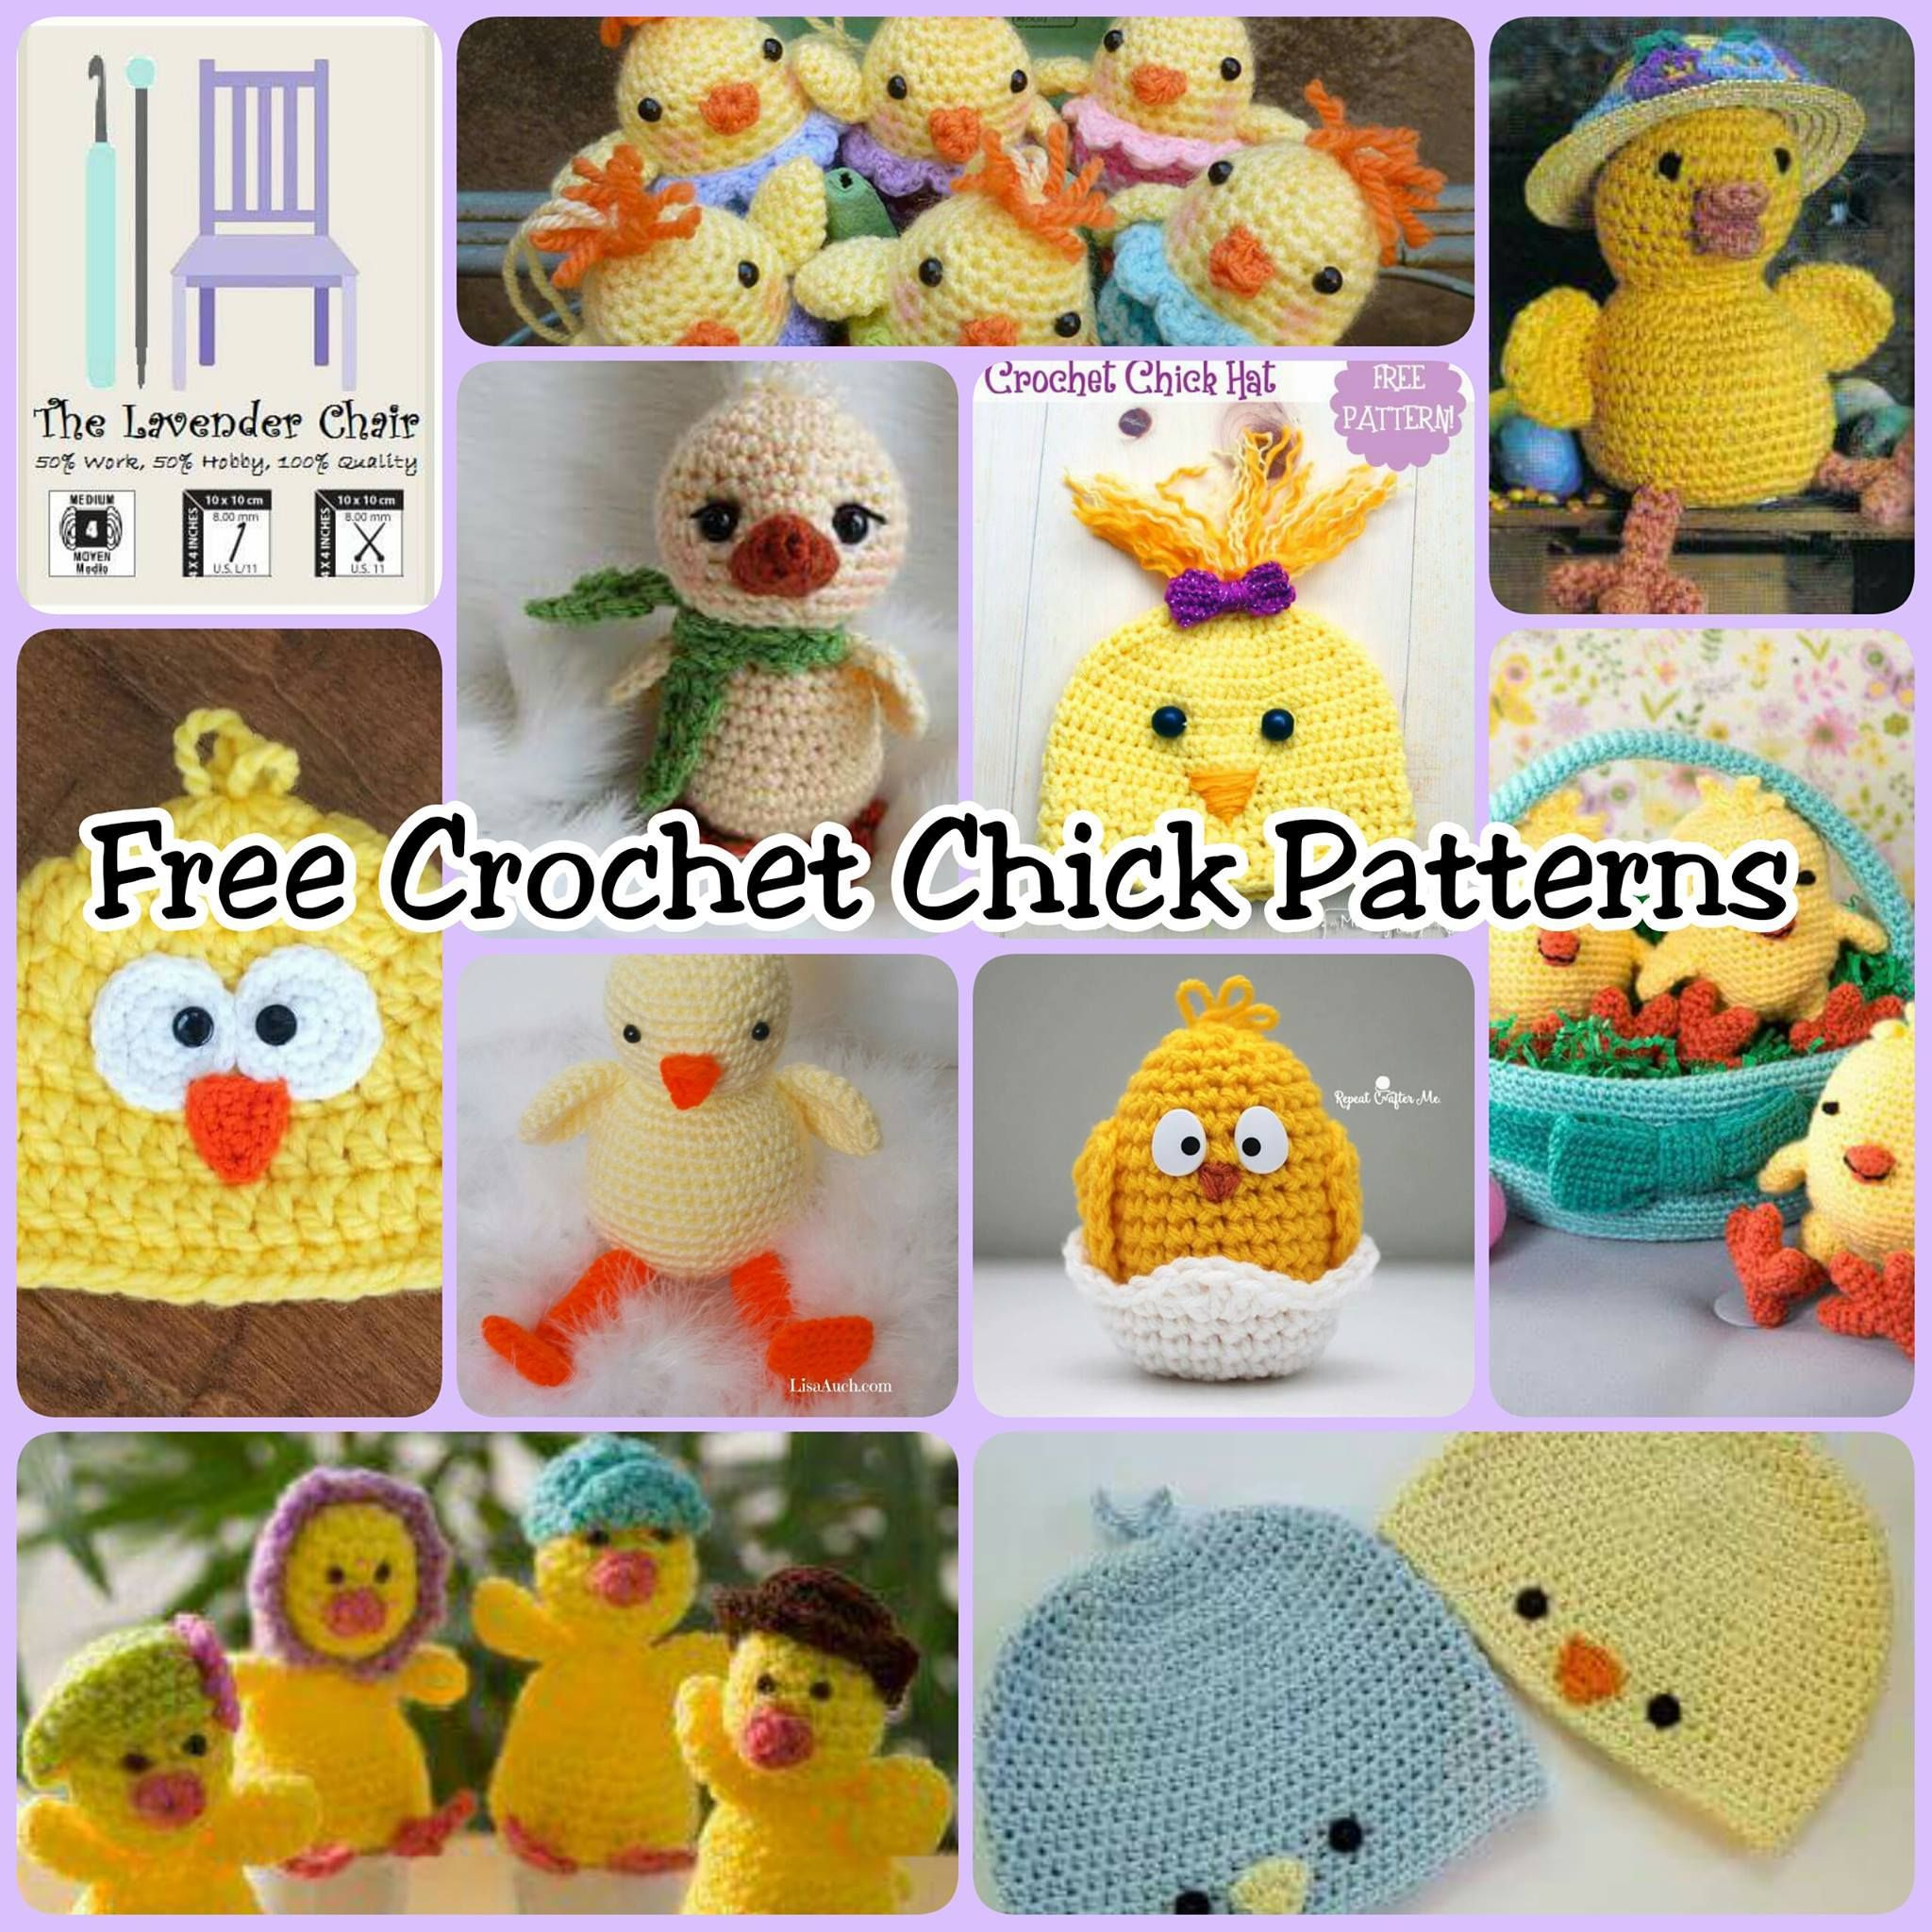 """<p>Easter+is+right+around+the+corner+and+the+only+thing+cuter+than+little+bunny+rabbits+are+these+little+chicks.+ThisEgg+Cozy+Chick+Familyis+so+cute.+For+more+egg+cozies,+check+out+these+Free+Crochet+Egg+Cozy+Patterns.++ThisBaby+Chickis+fresh+out+of+its+egg+ThisChick+Hatis+so+adorable!+I+…</p><div+class=""""sharedaddy+sd-sharing-enabled""""><div+class=""""robots-nocontent+sd-block+sd-social+sd-social-icon+sd-sharing""""><h3+class=""""sd-title"""">Share+this:</h3><div+class=""""sd-content""""><ul><..."""